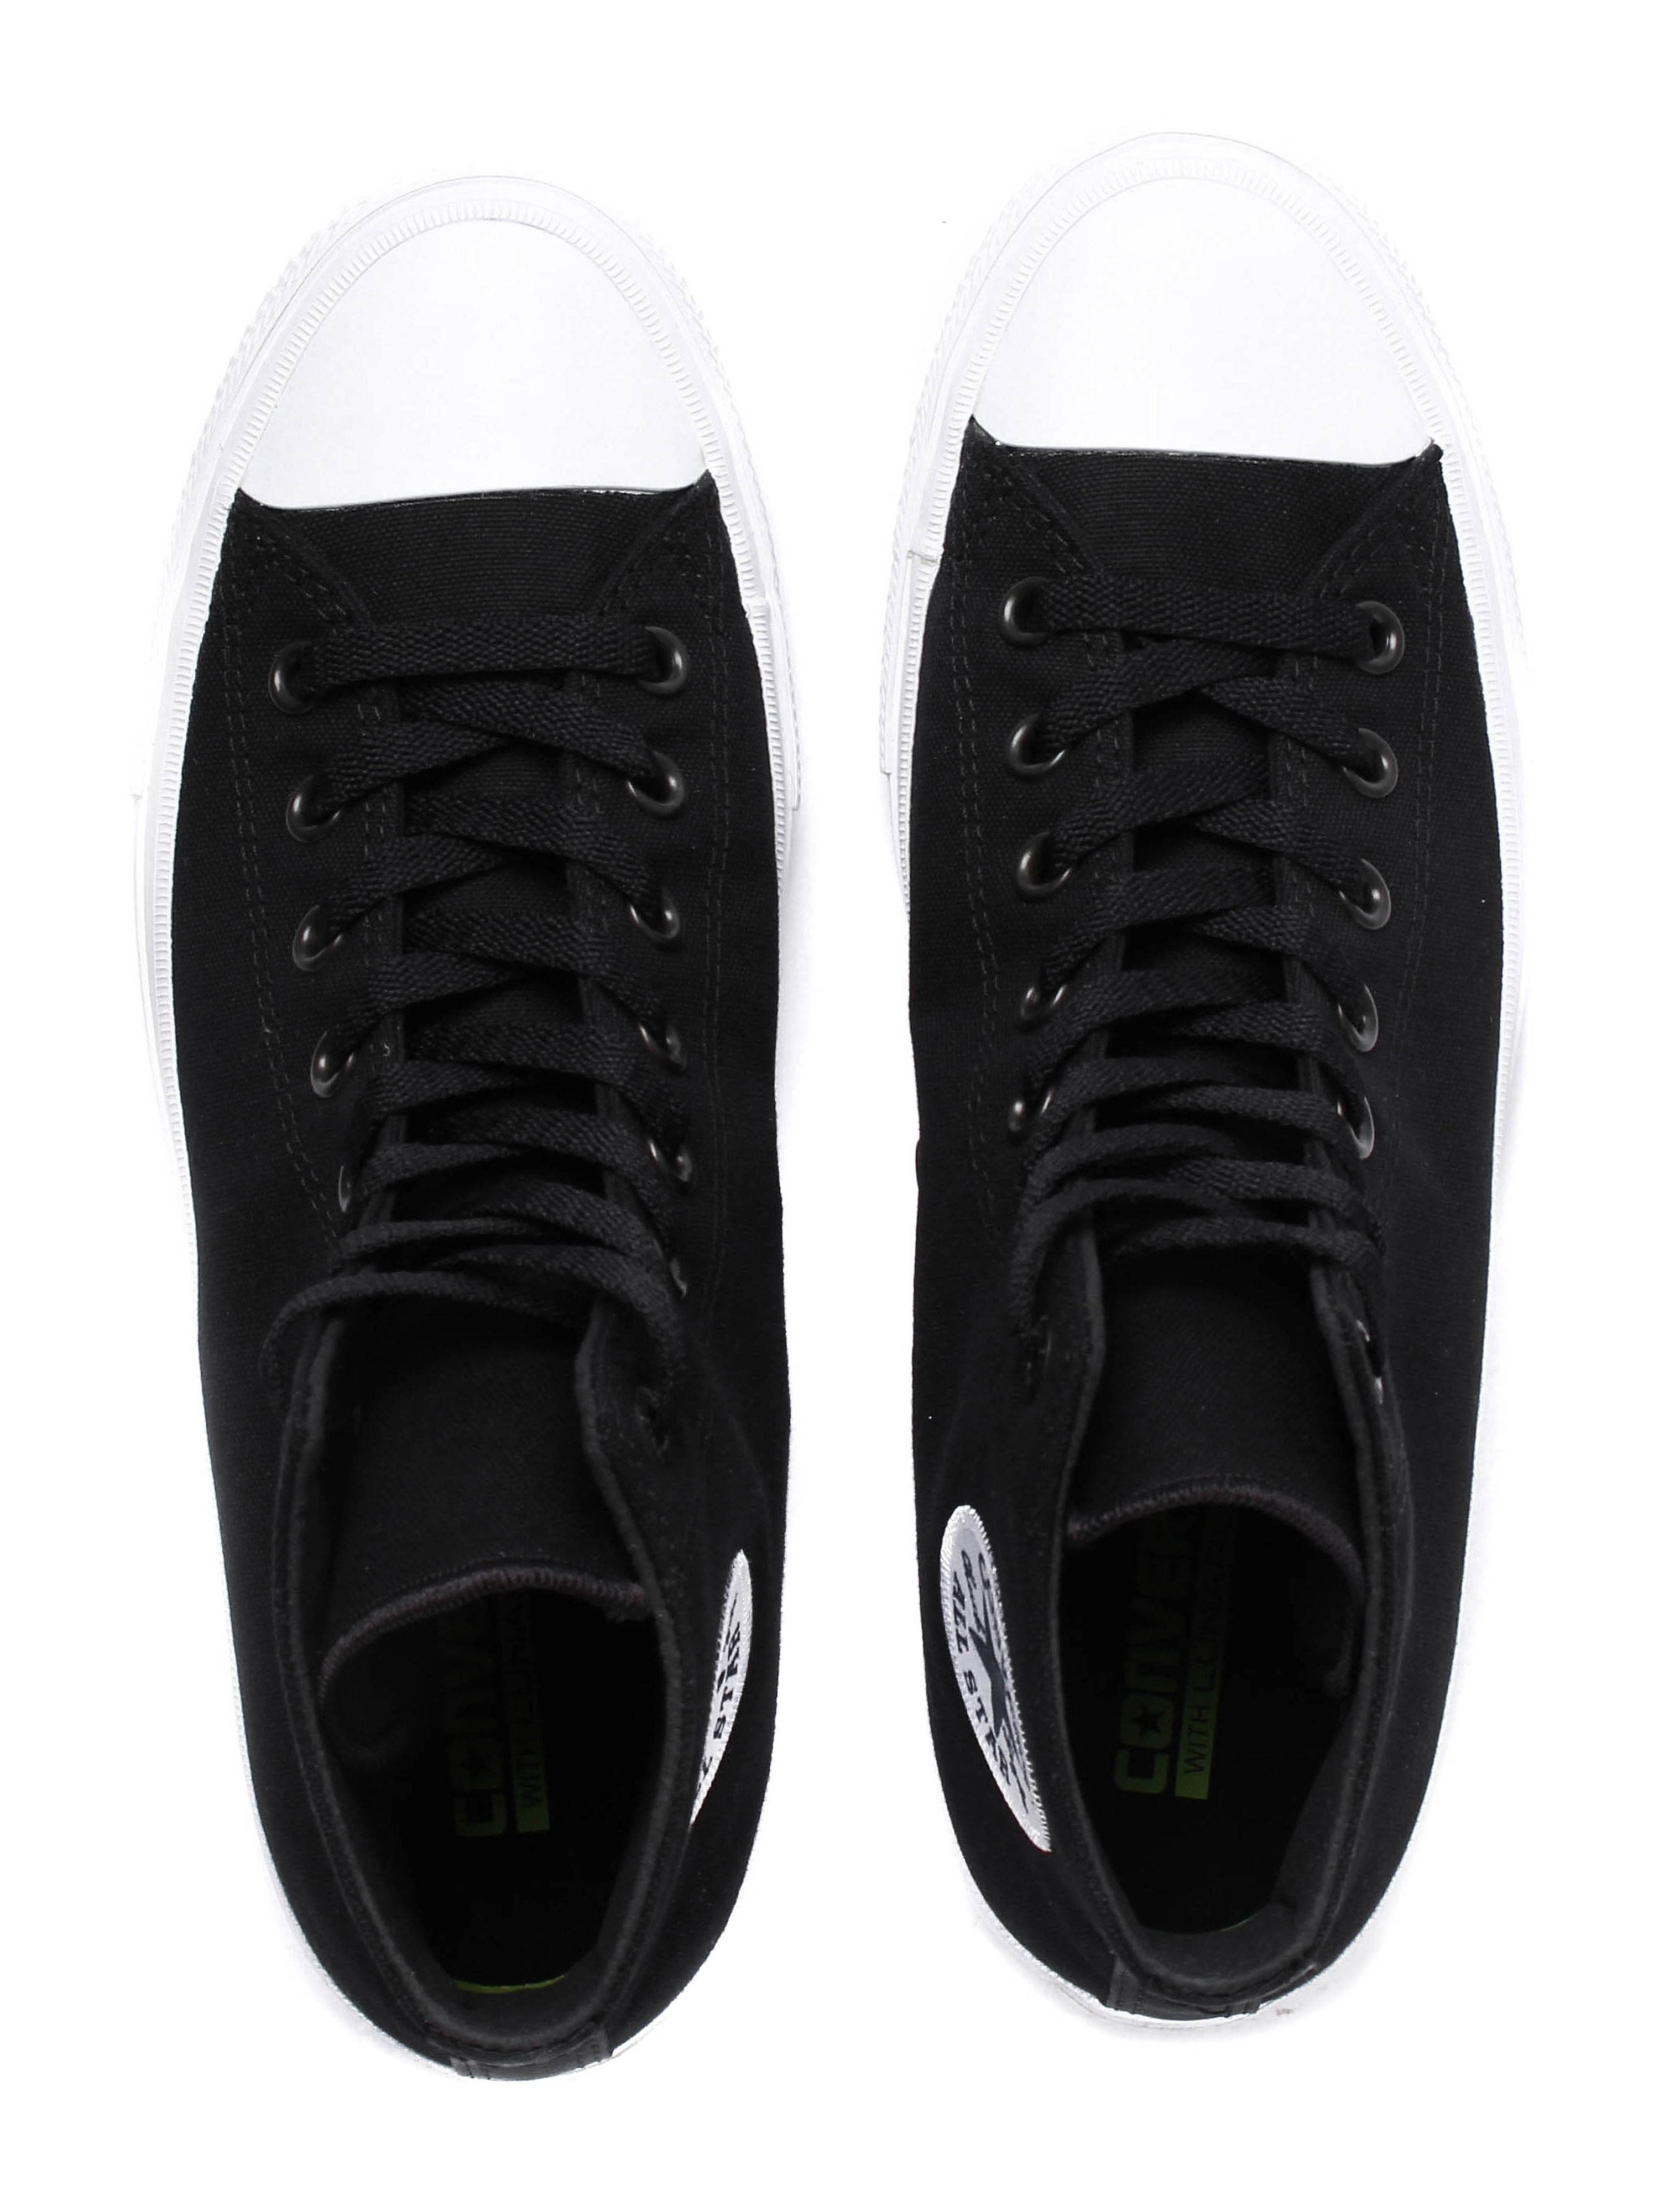 Converse Men's Chuck Taylor II High Top Canvas Trainers - Black & White